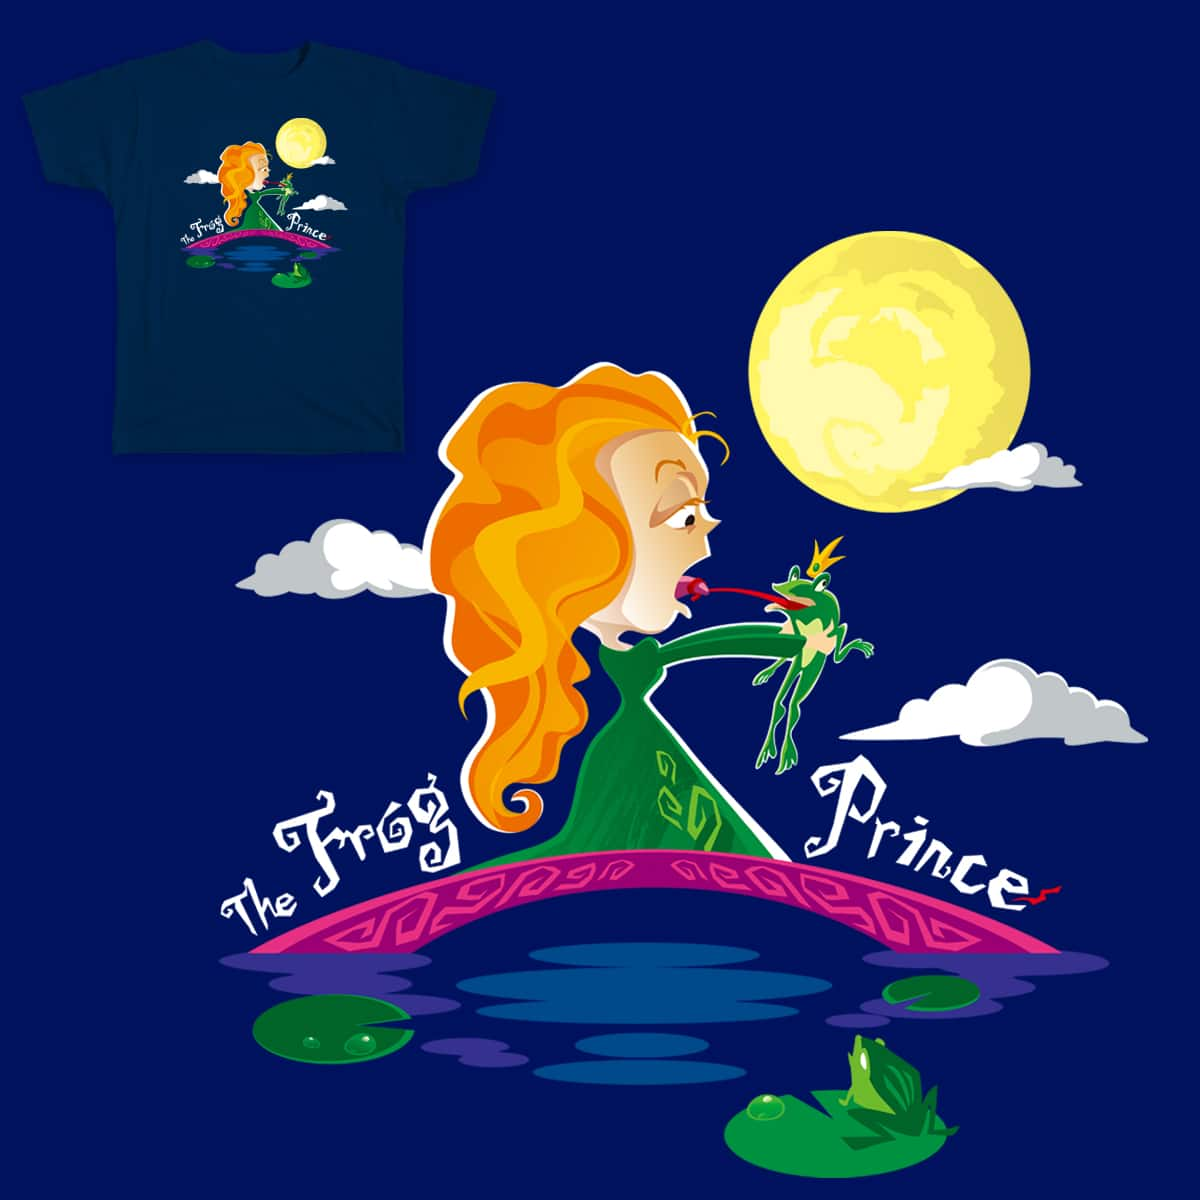 The Frog Prince by lovestar on Threadless